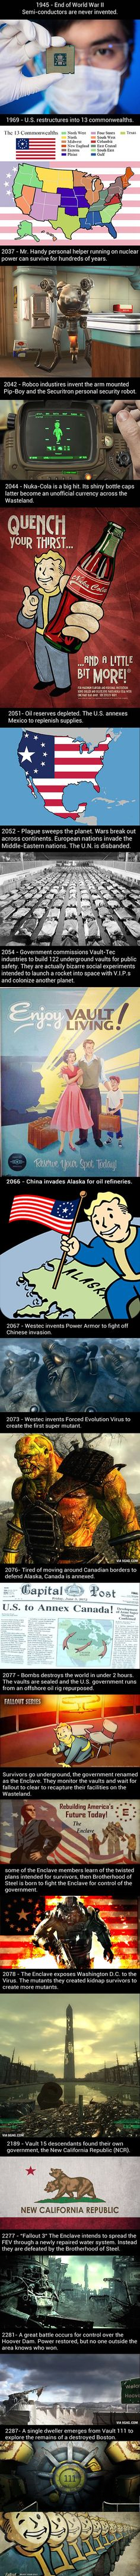 Catch Up On The History Of Fallout Universe